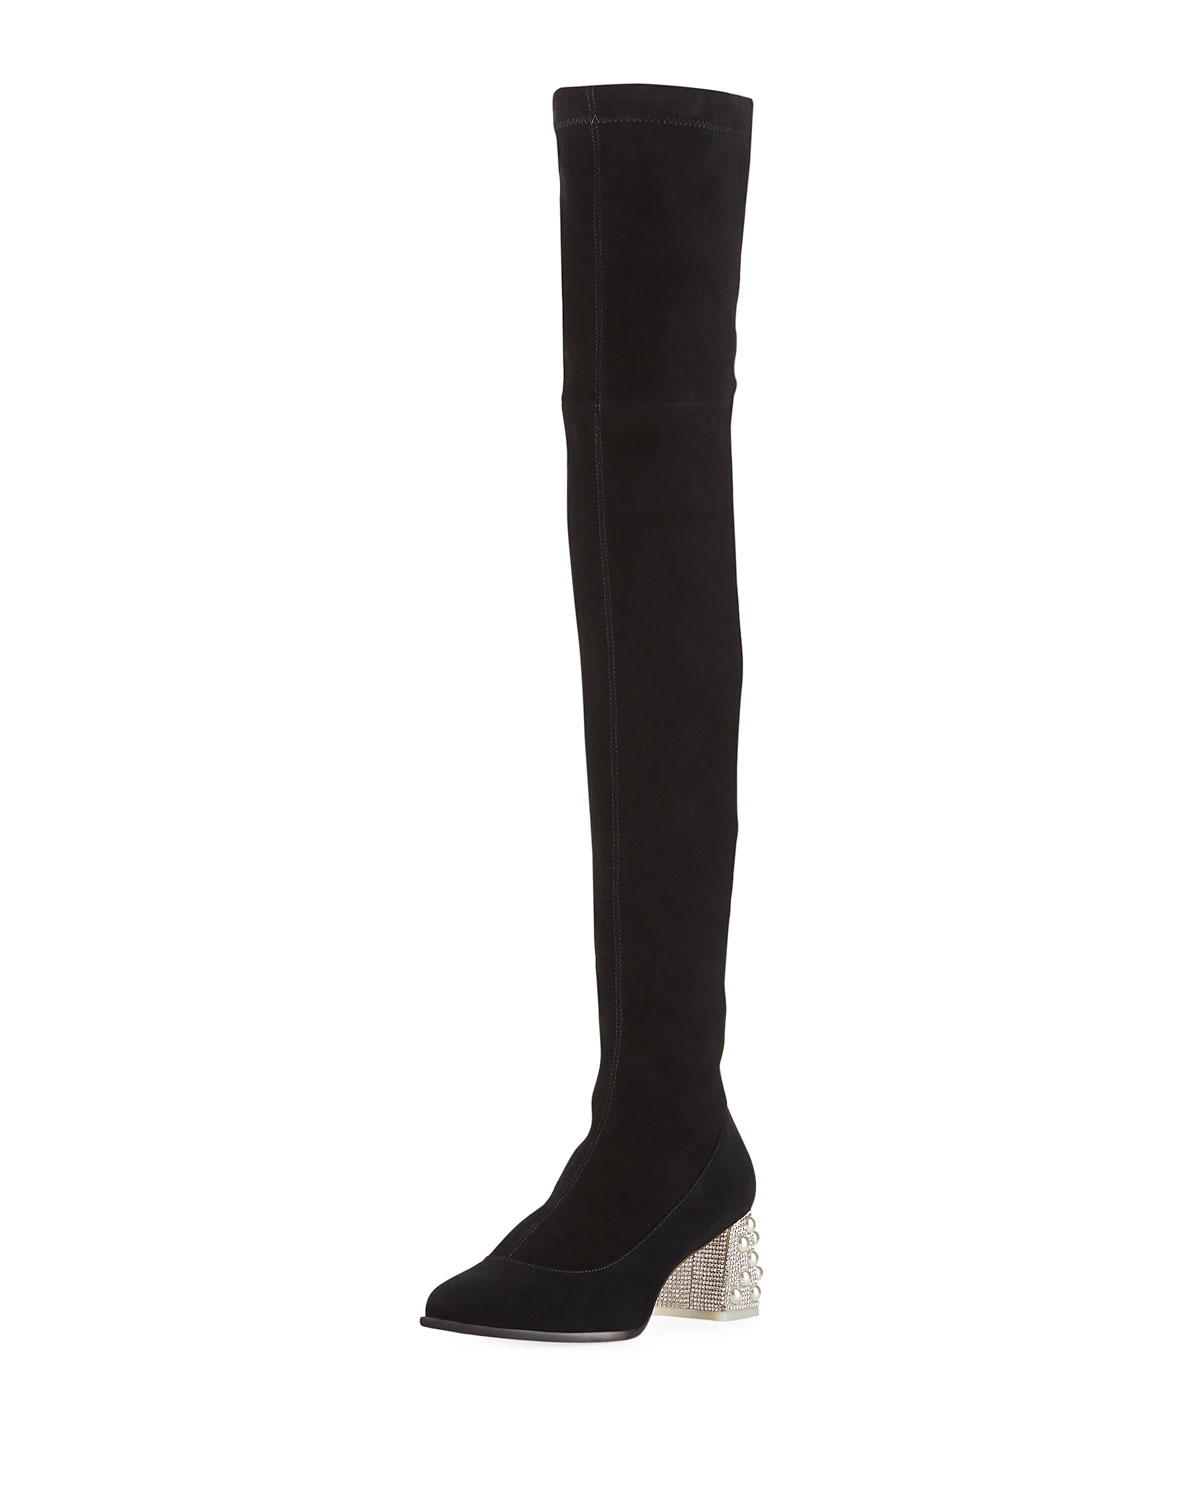 44518300cb5 Sophia Webster Suranne Over-The-Knee Boots with Embellished Block ...